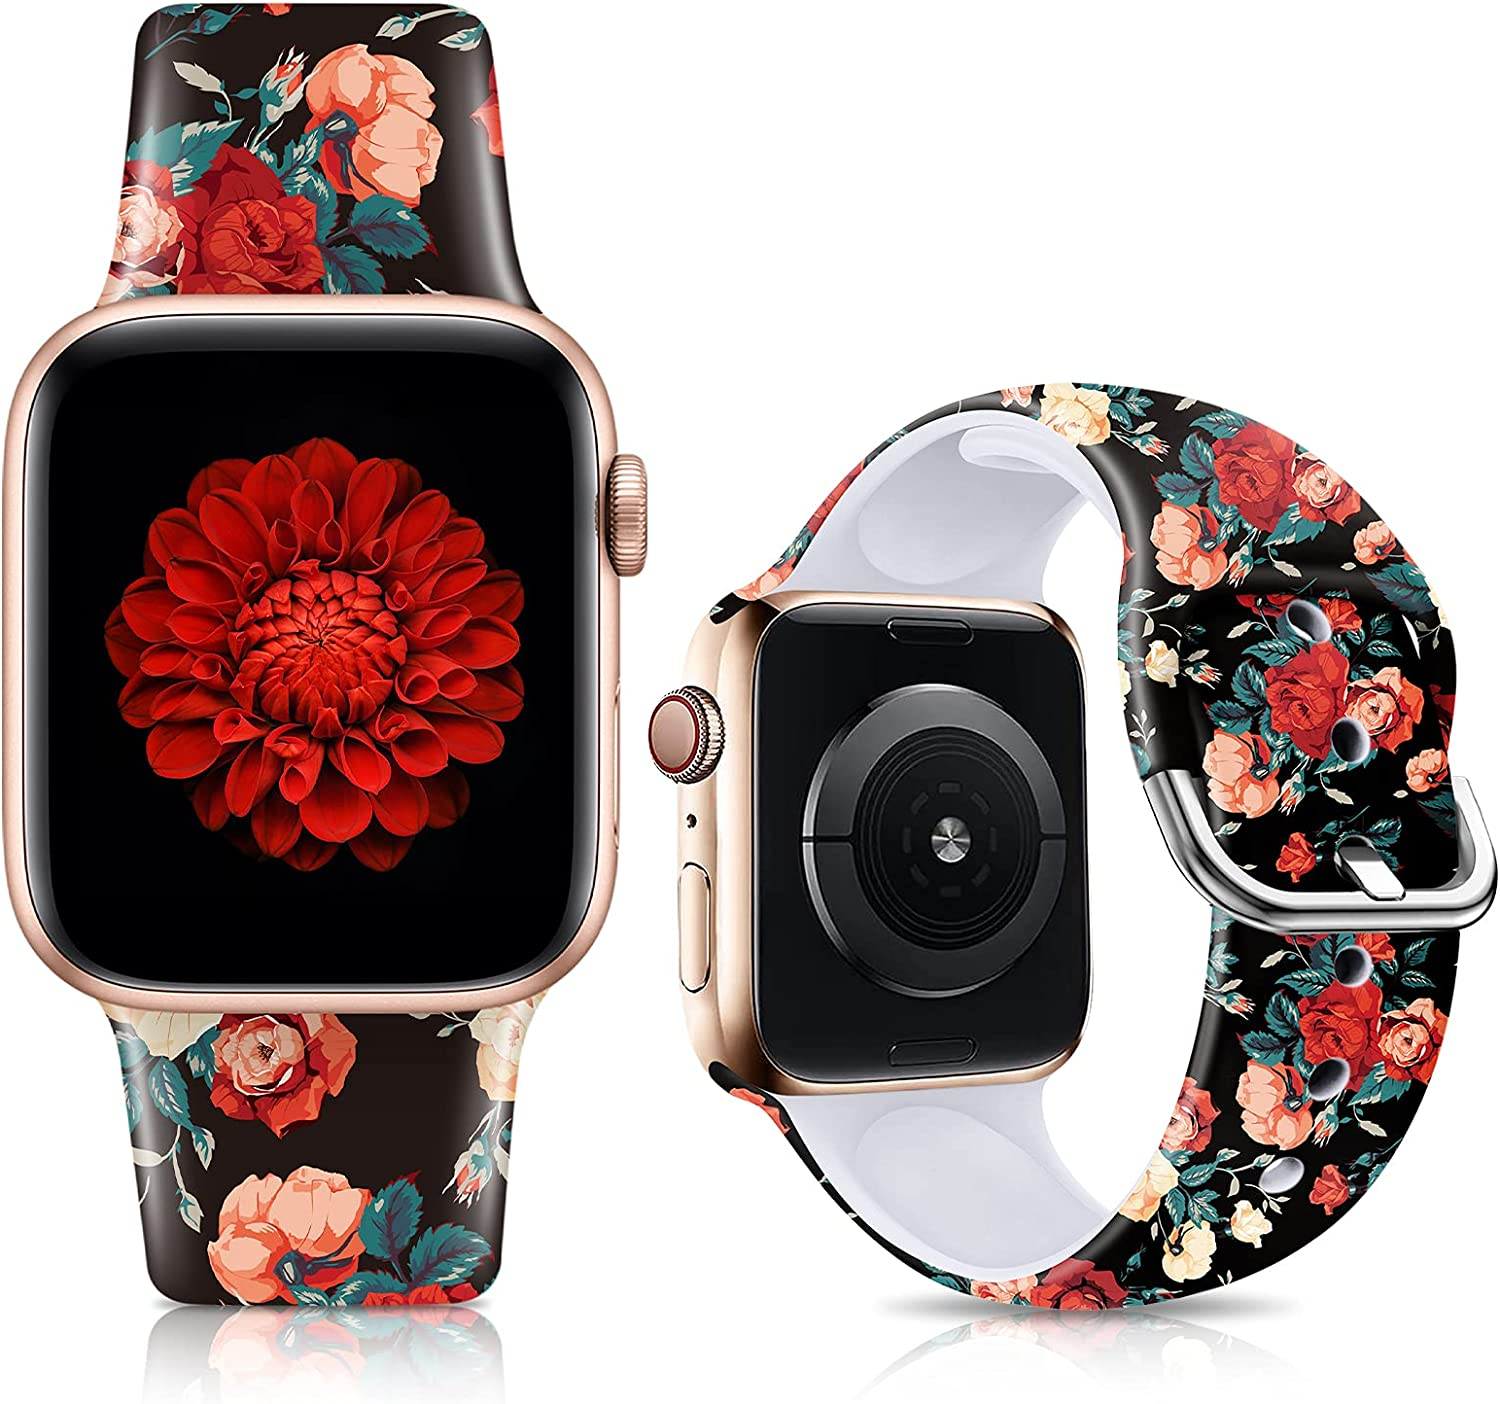 IKANFI Bands Compatible with Apple Watch Band 38mm 40mm 42mm 44mm for Women Men Soft Silicone Pattern Printed Band Strap for iWatch SESeries 6 5 4 3 2 1 Wristband